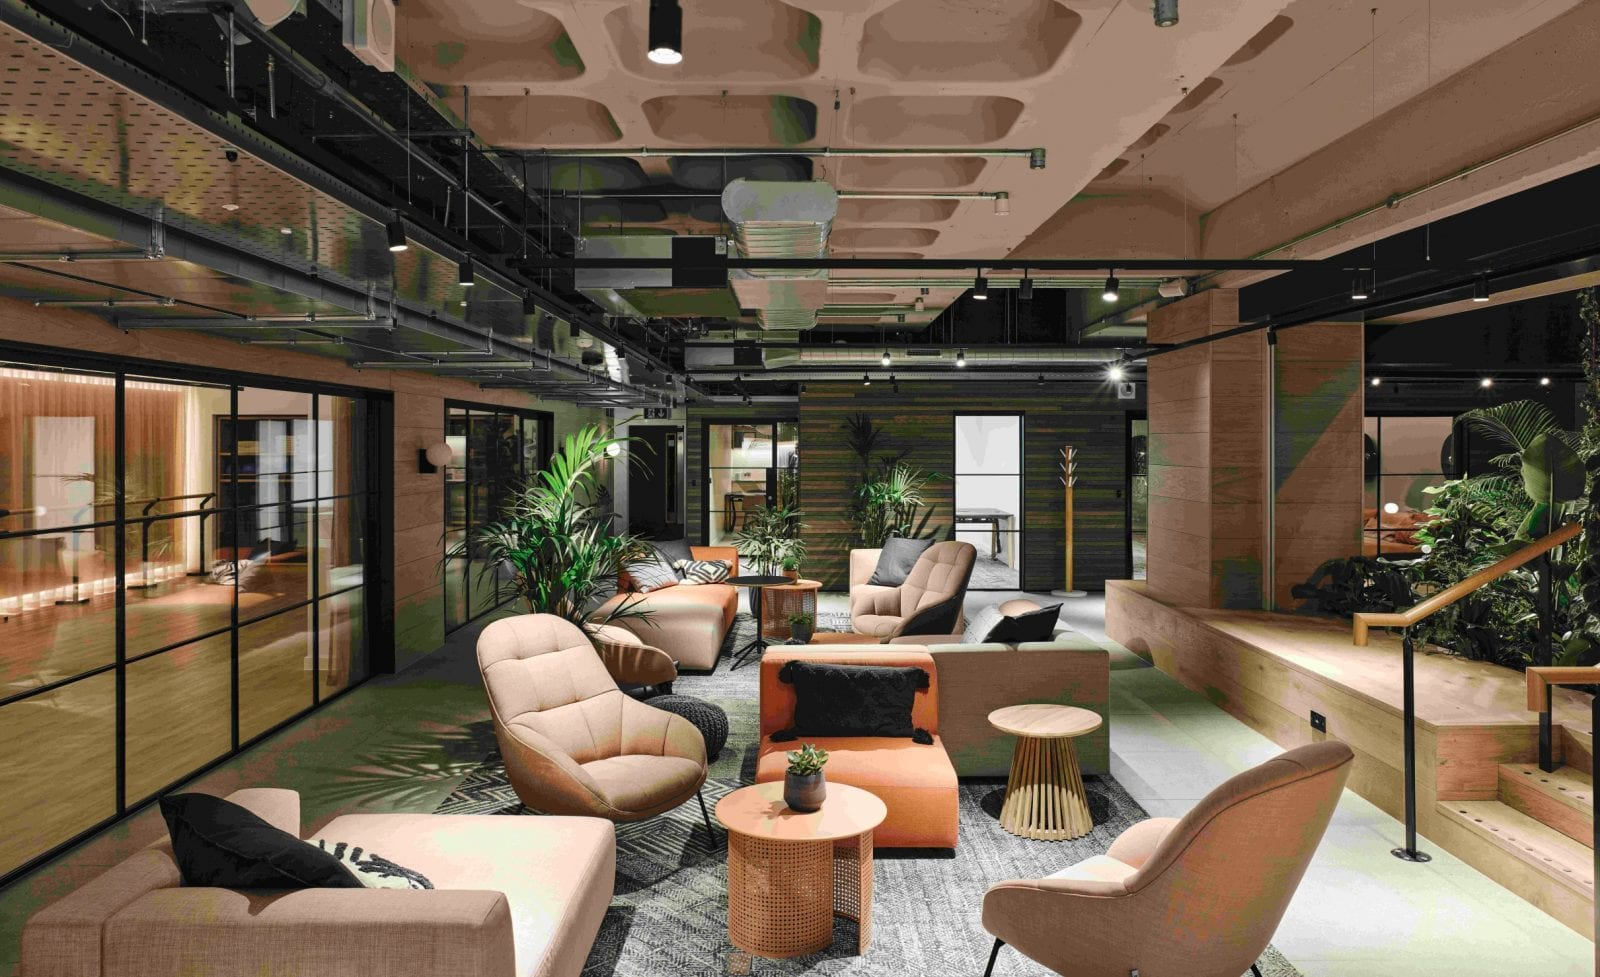 An 'inspiring' new wellbeing-focused workspace has opened in Manchester city centre, The Manc